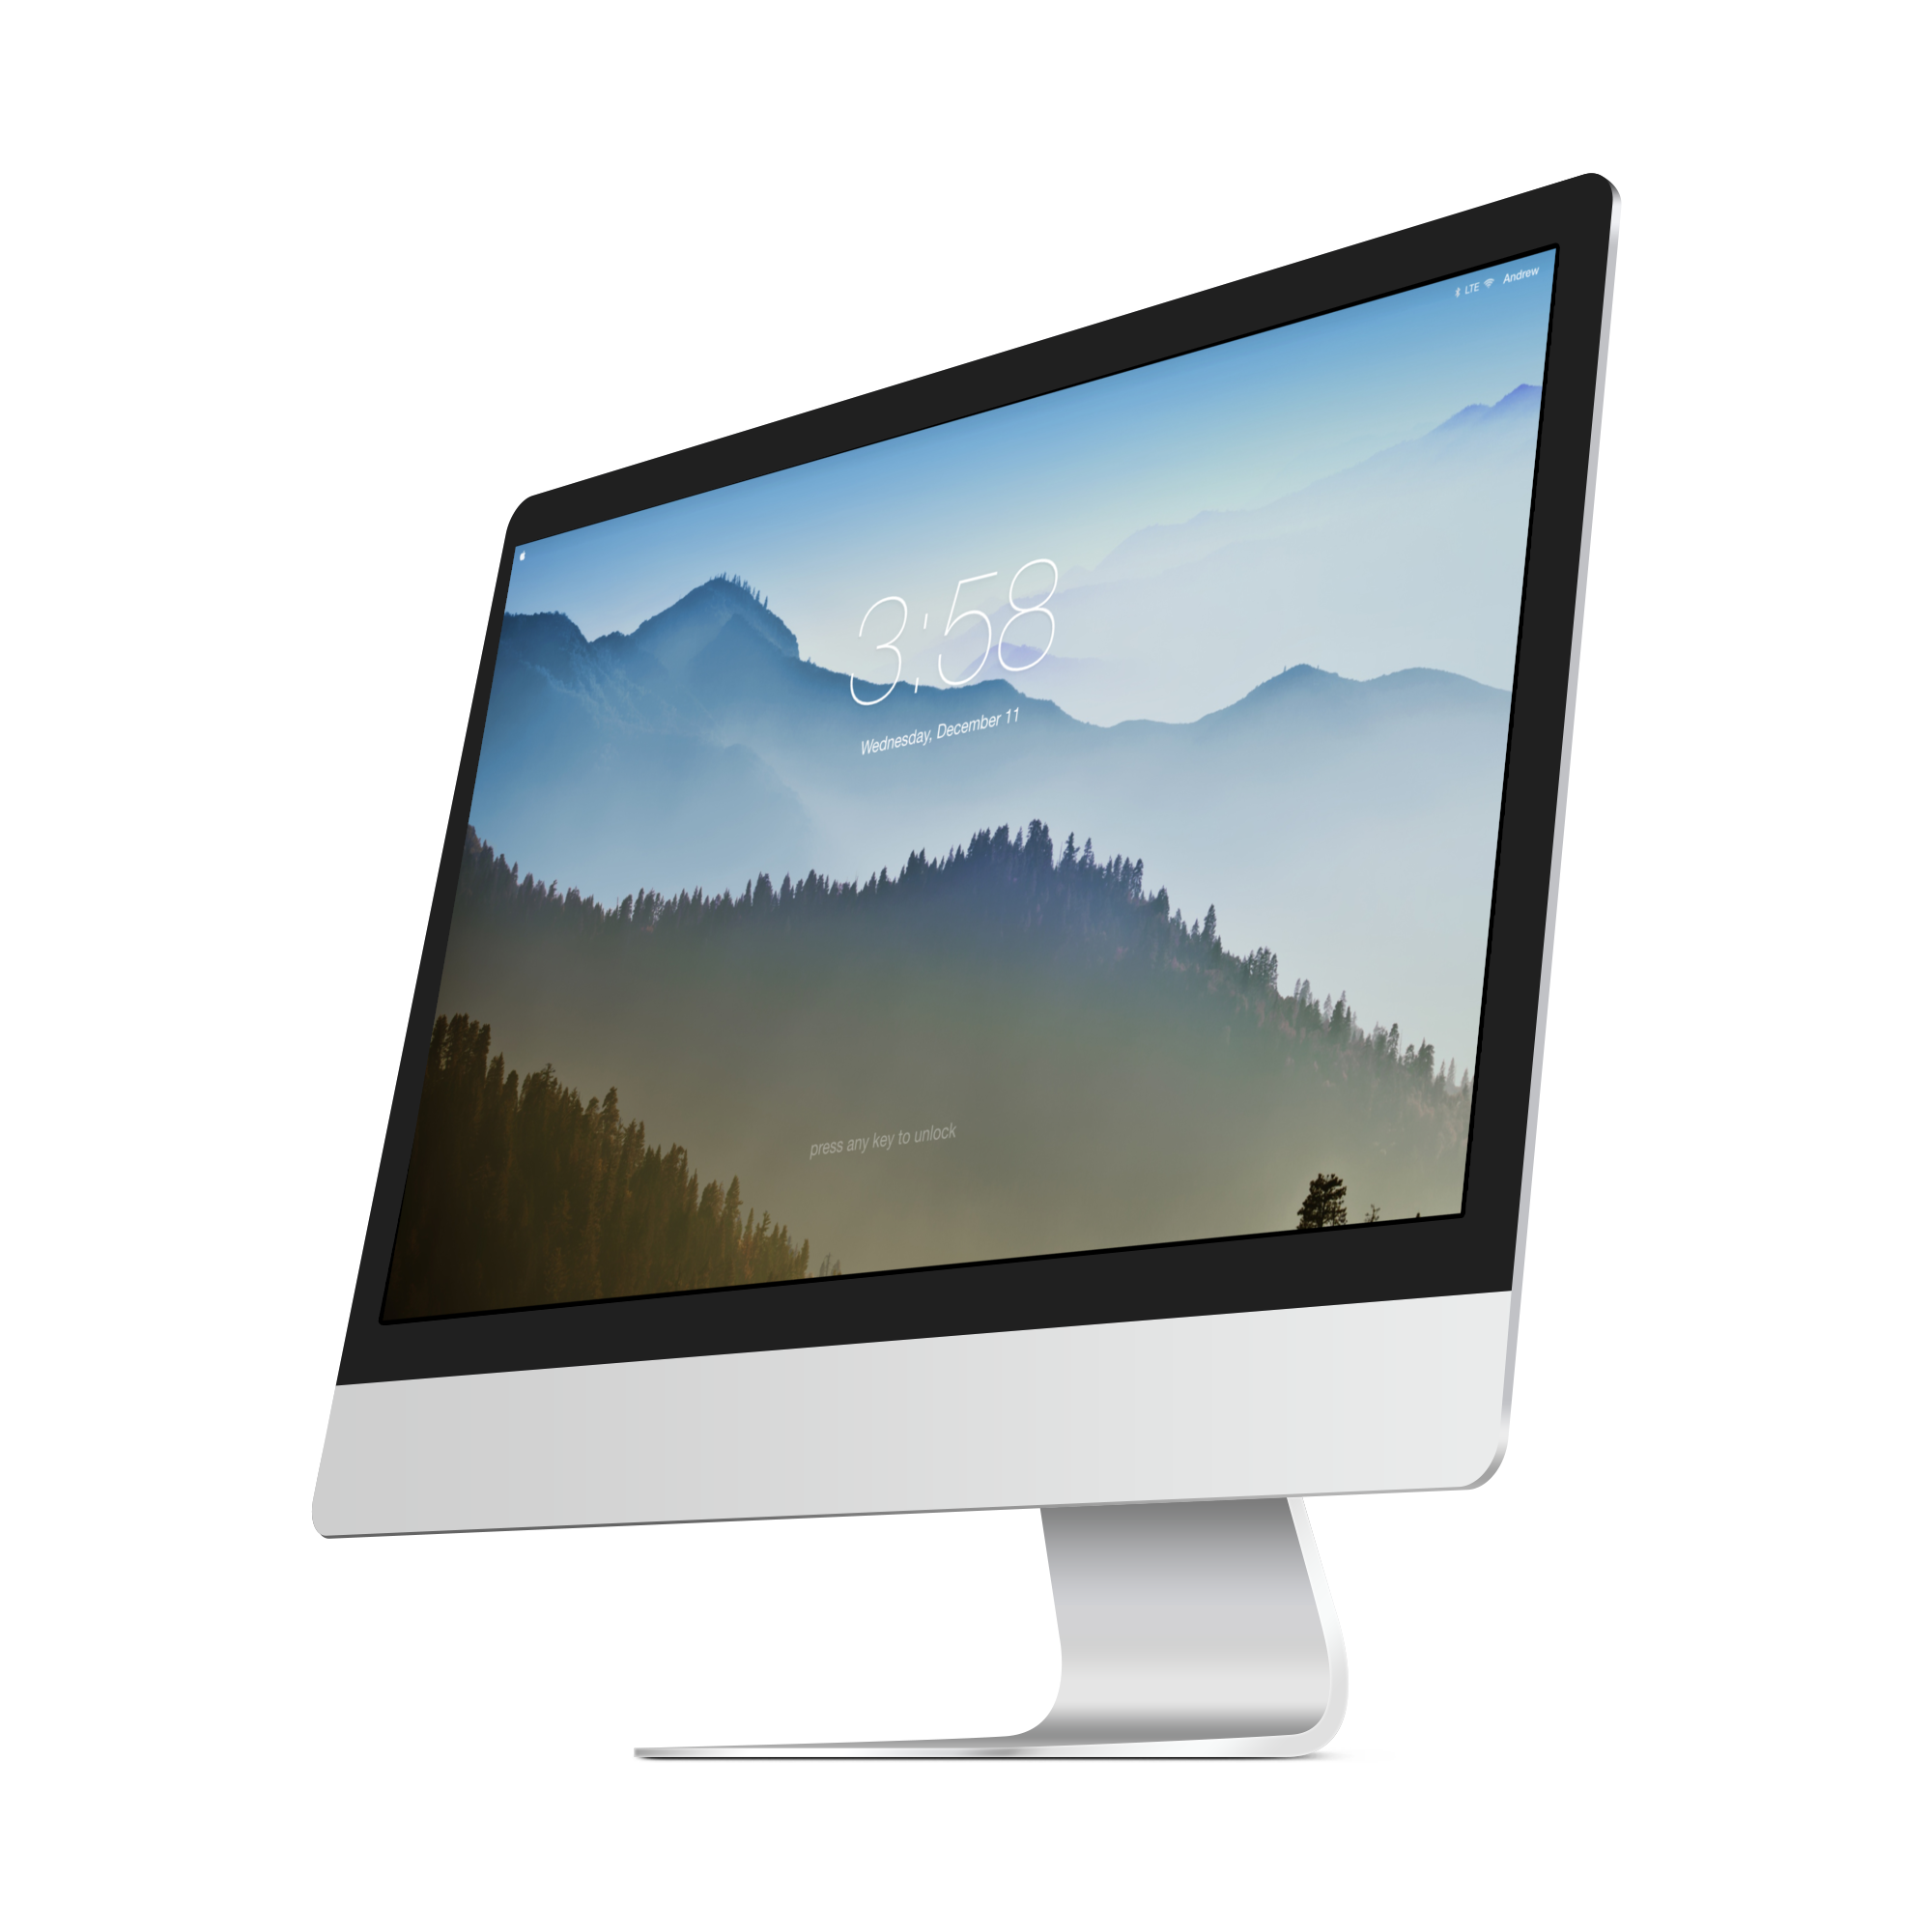 Mac OS 11 Could (and Should) Look like This – Gallery